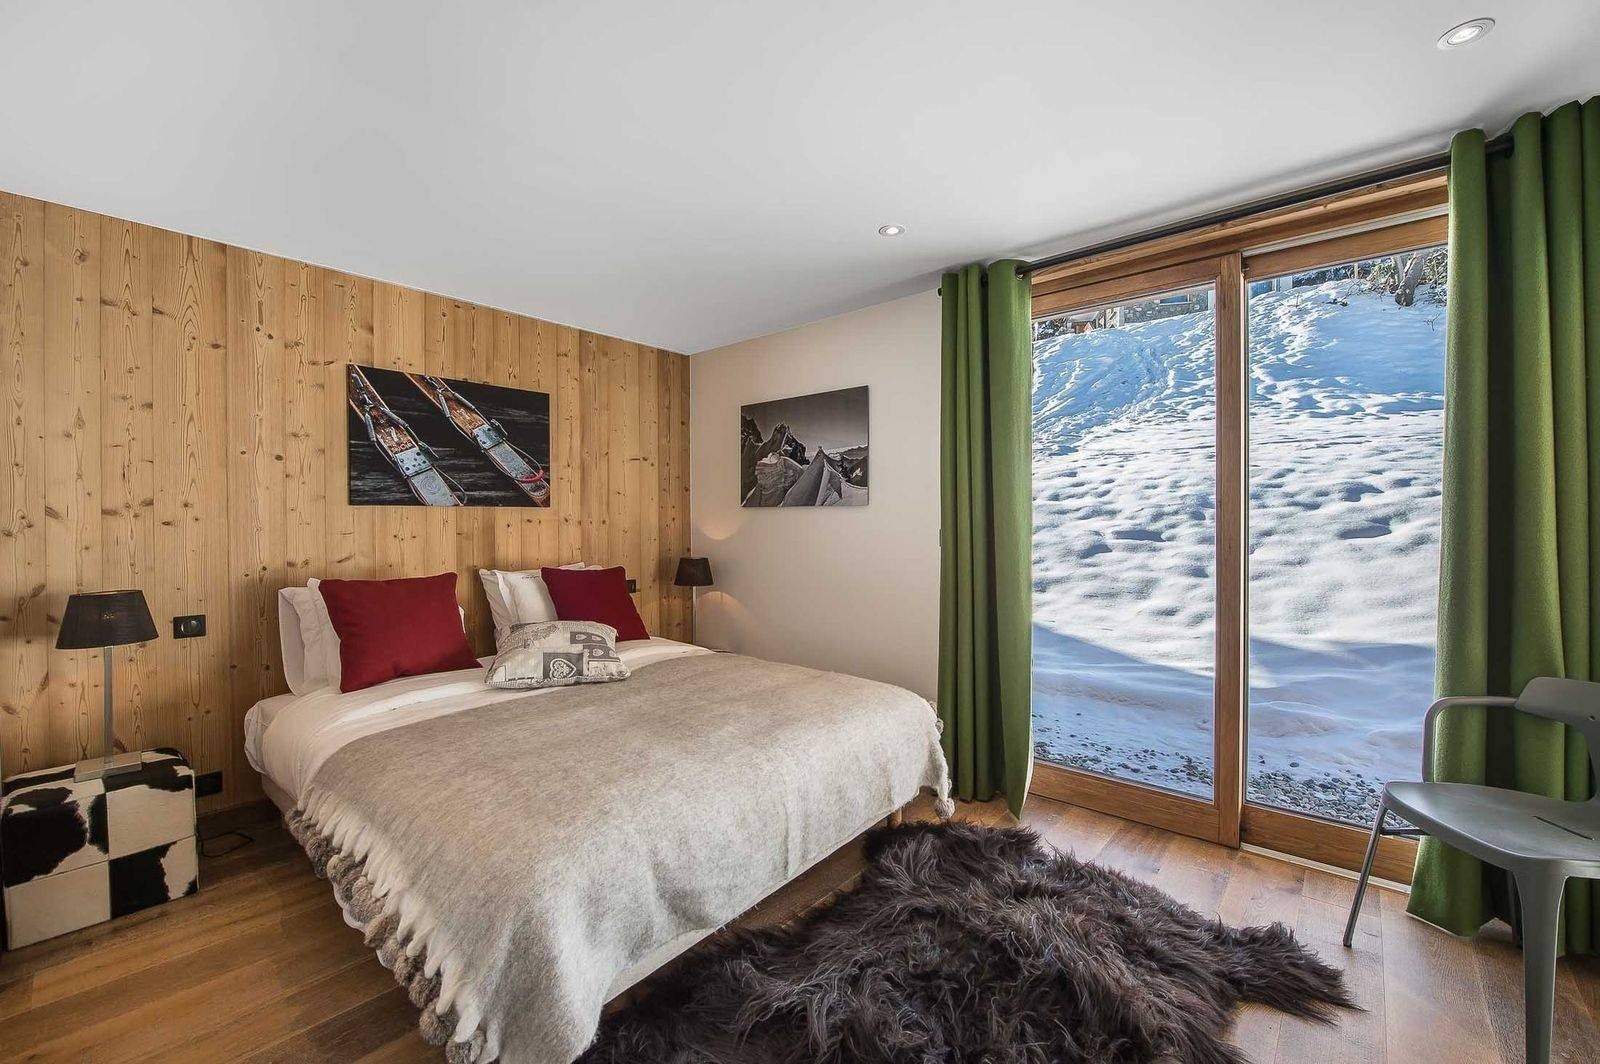 Courchevel 1550 Location Chalet Luxe Nibite Chambre